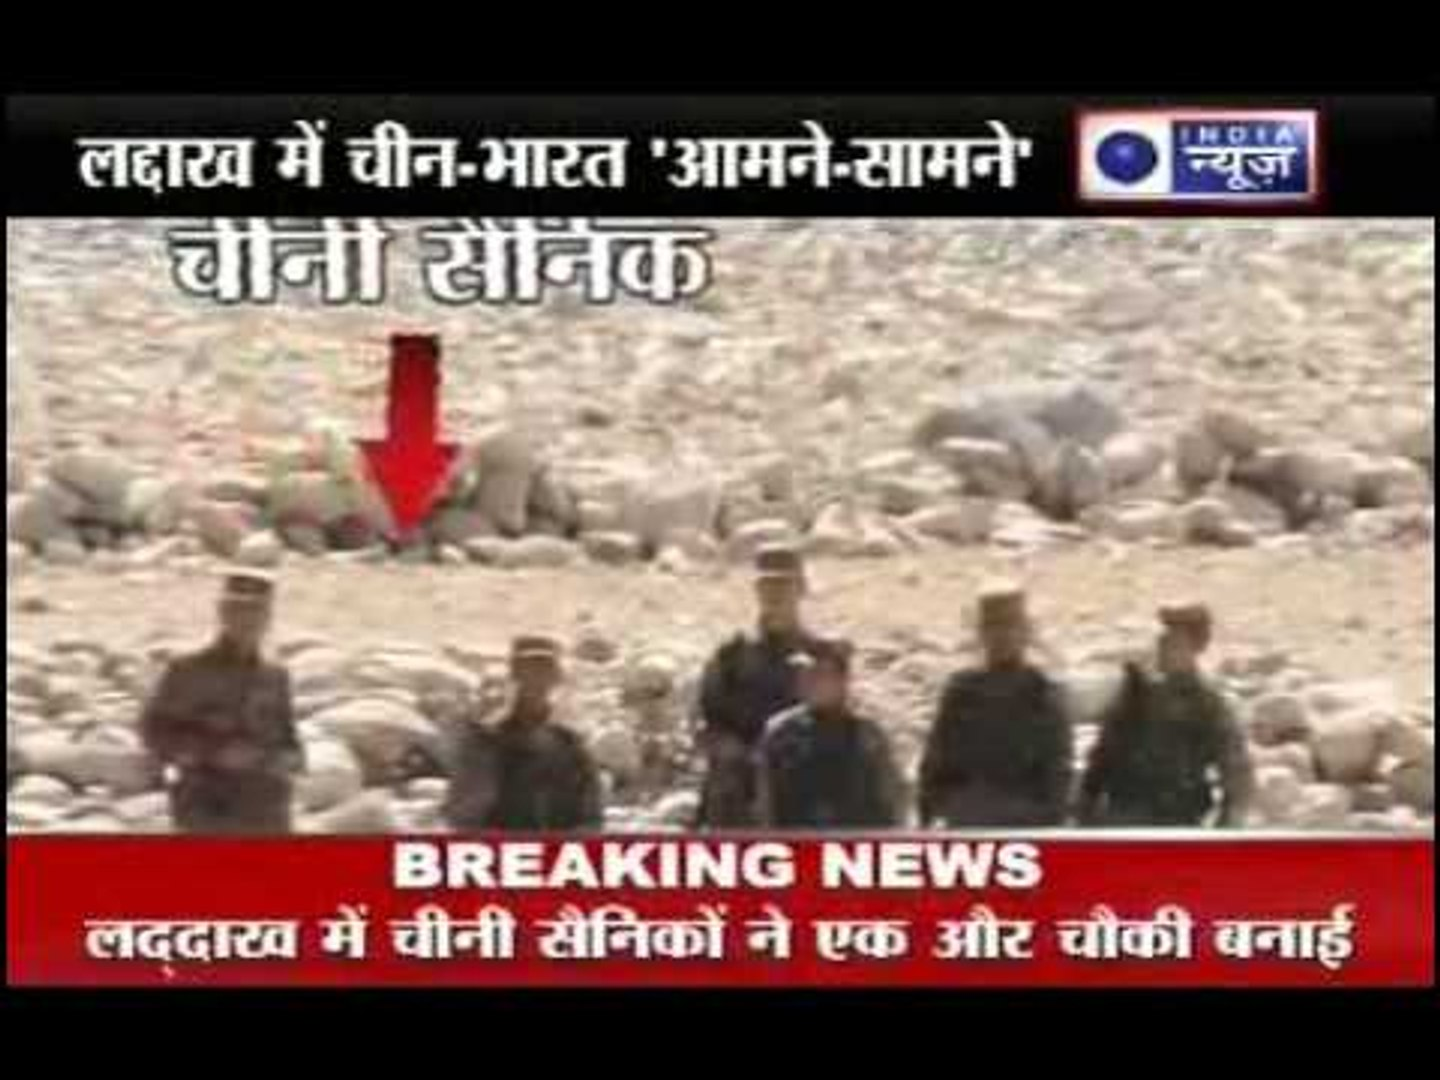 India News: China Provoke India again